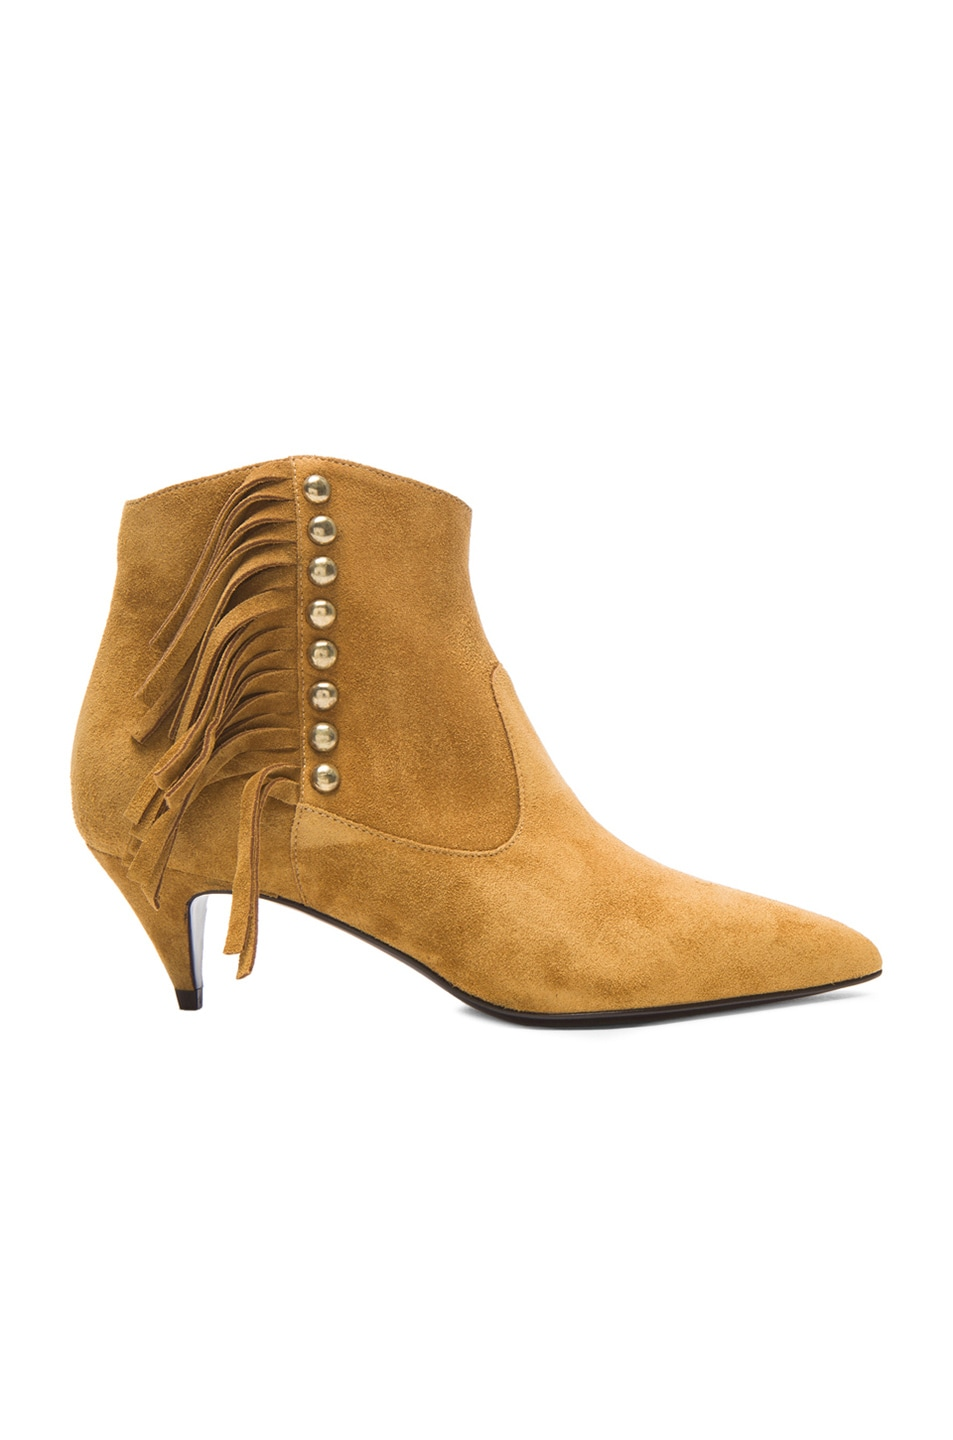 Image 1 of Saint Laurent Studded Fringe Suede Cat Boots in Tan